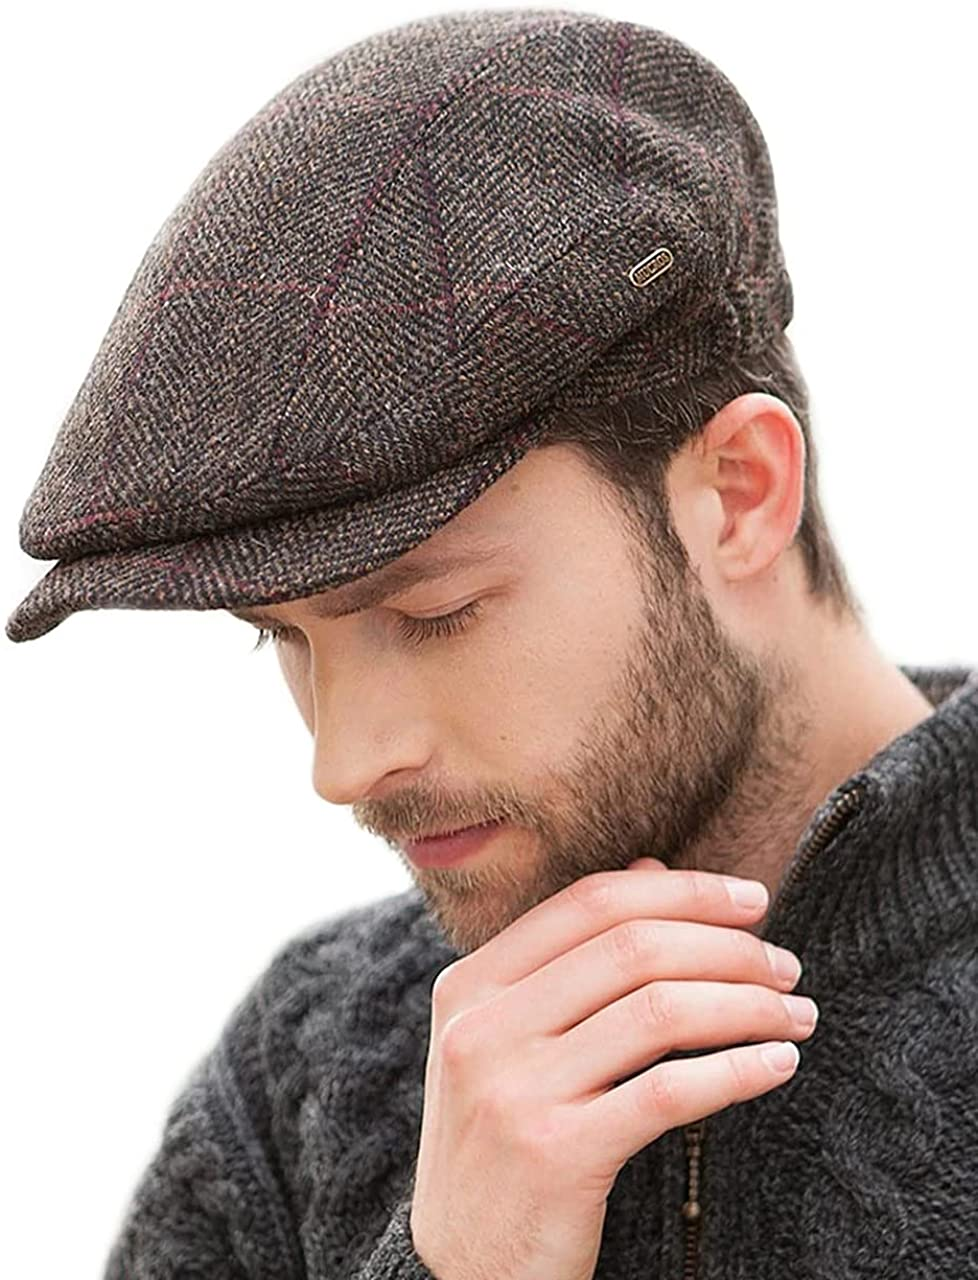 Mucros Weavers Irish Outlet ☆ Challenge the lowest price of Japan Free Shipping Flat Cap Ireland Tweed Made in Hat